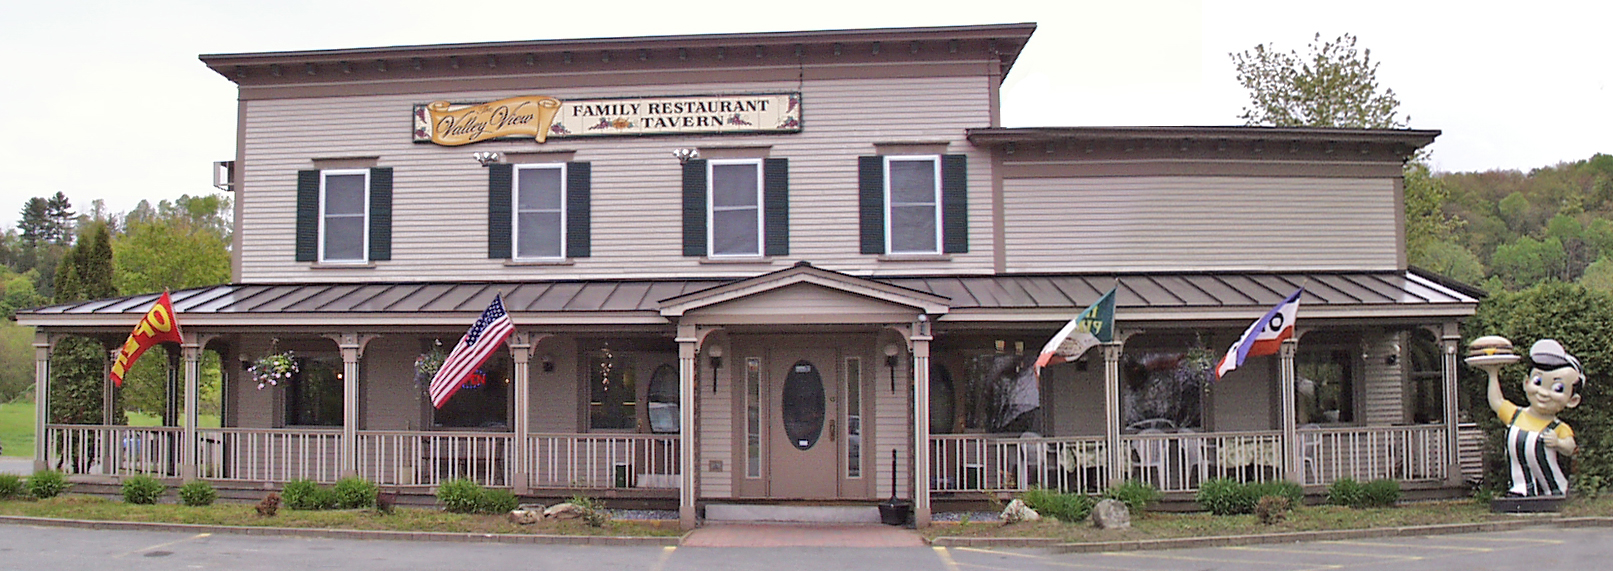 The Valley View Family Restaurant & Tavern